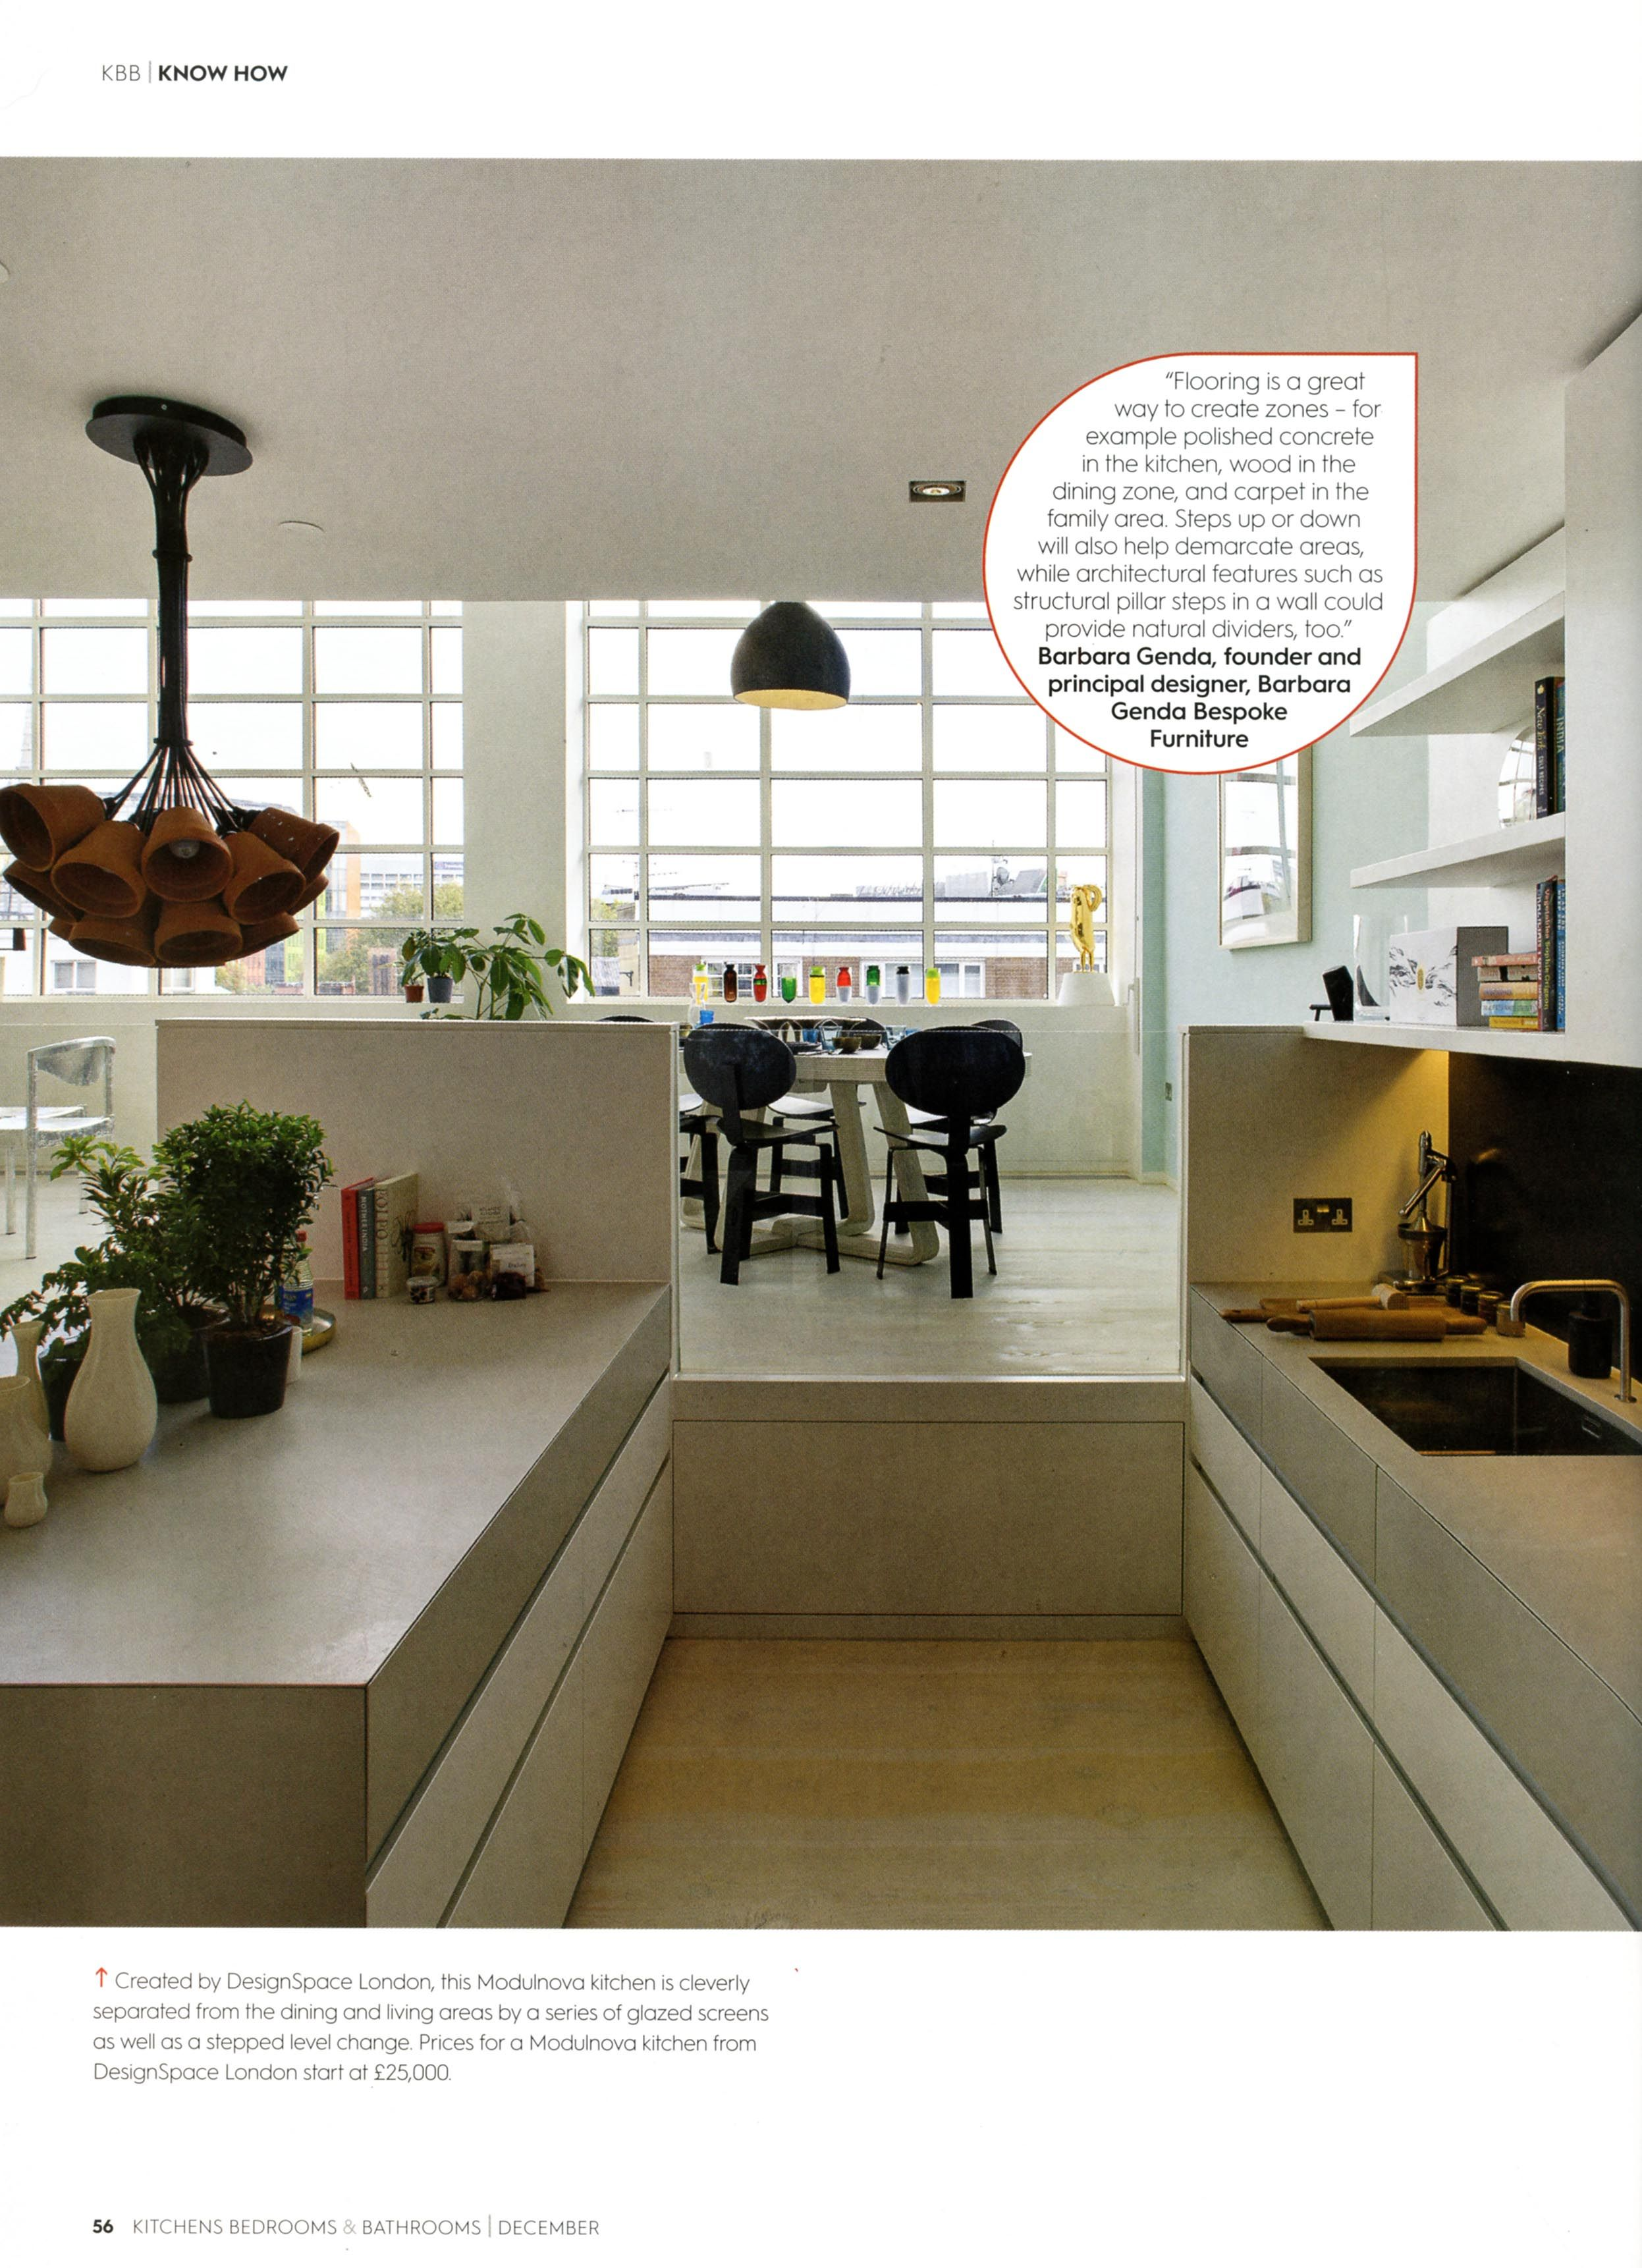 This sleek kitchen is from DesignSpace London. KBB